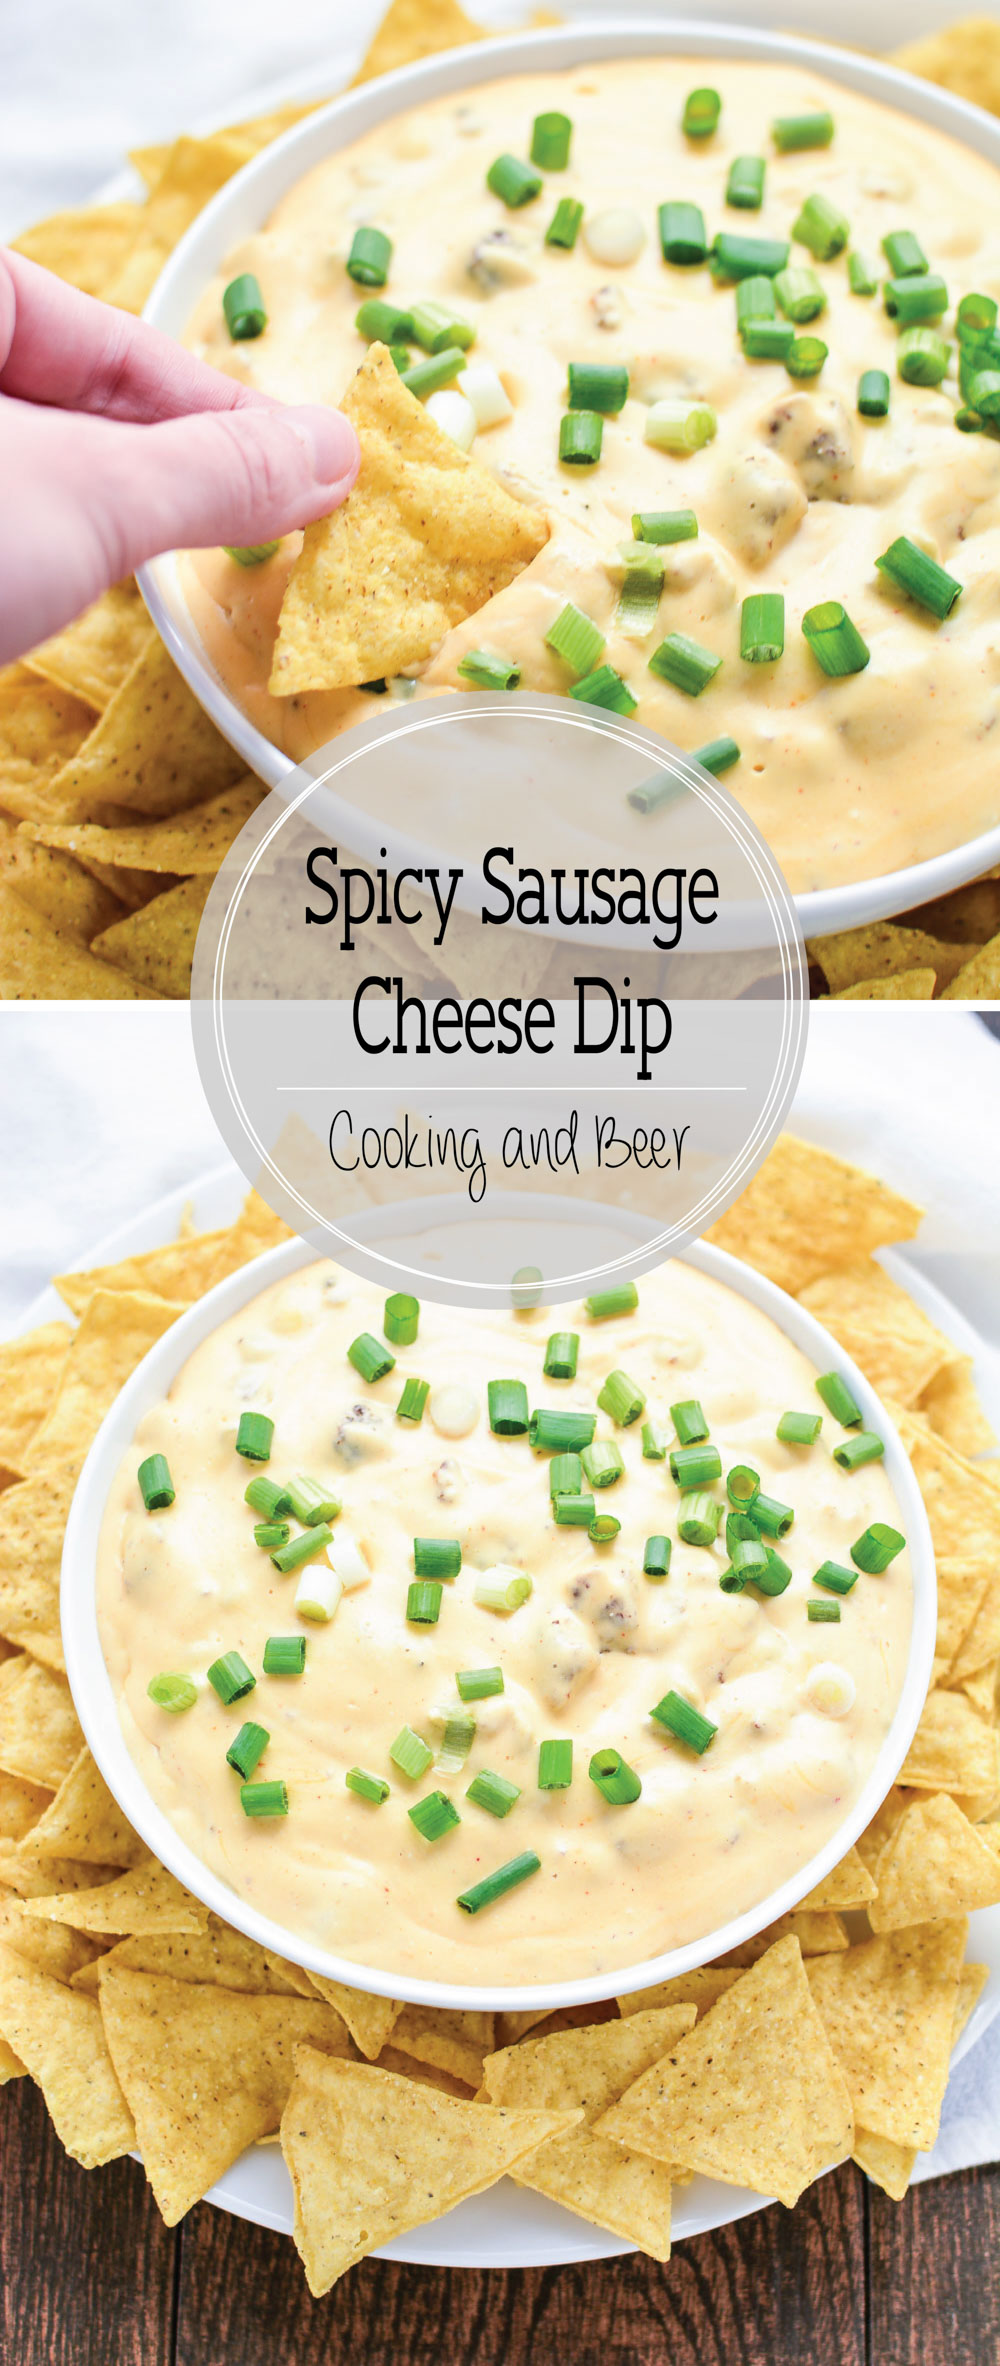 Slow Cooker Spicy Sausage Cheese Dip is the perfect game day recipe highlighting savory ground pork sausage, tons of cheese, and spices to compliment!